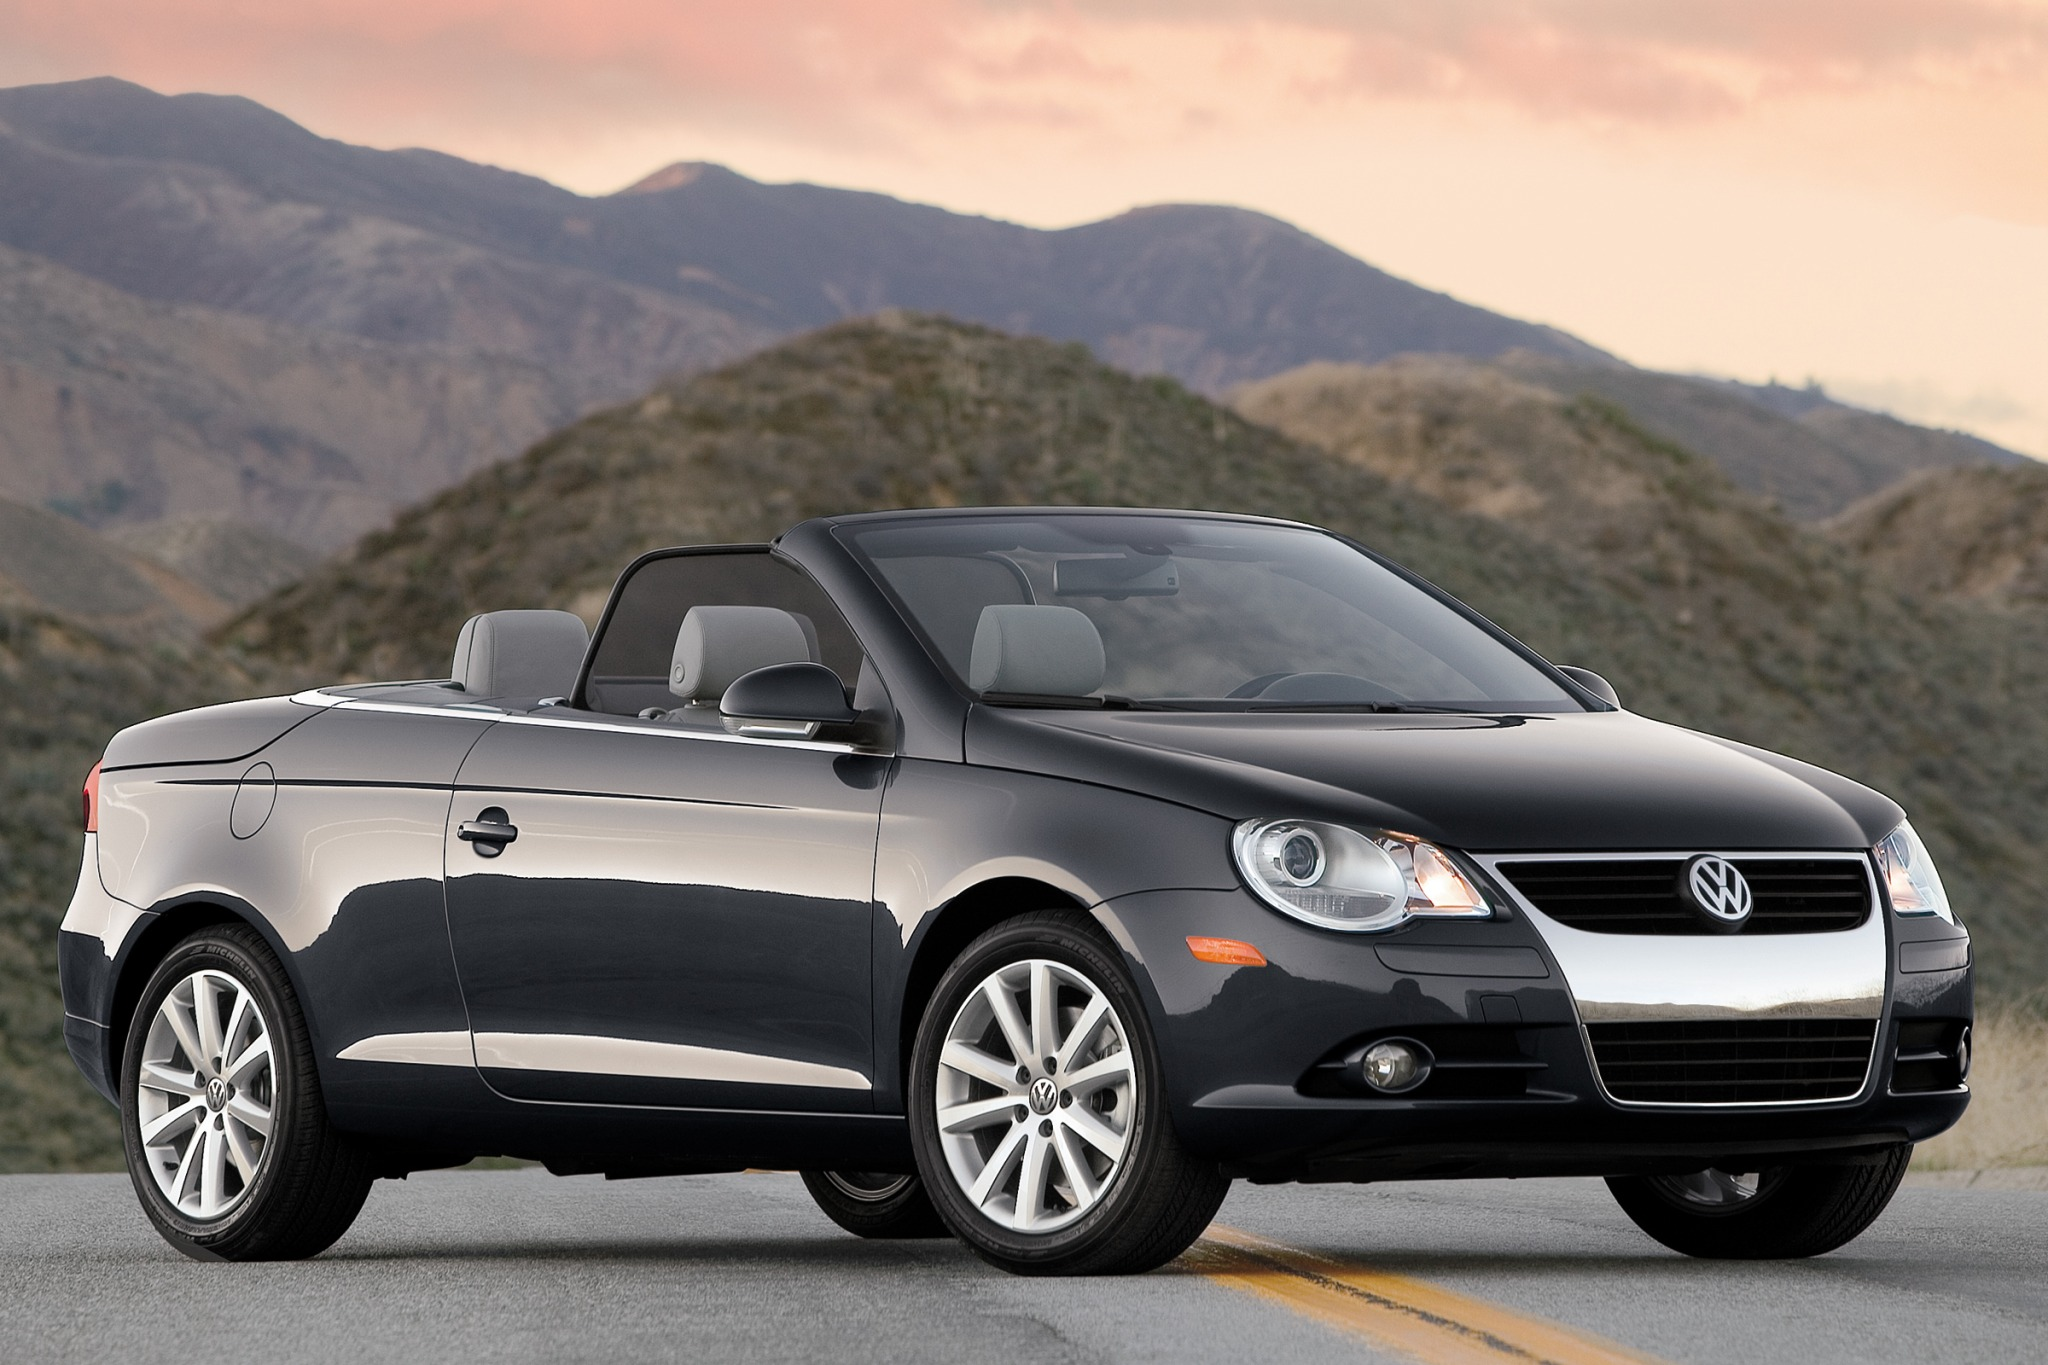 2007 volkswagen eos information and photos zombiedrive. Black Bedroom Furniture Sets. Home Design Ideas